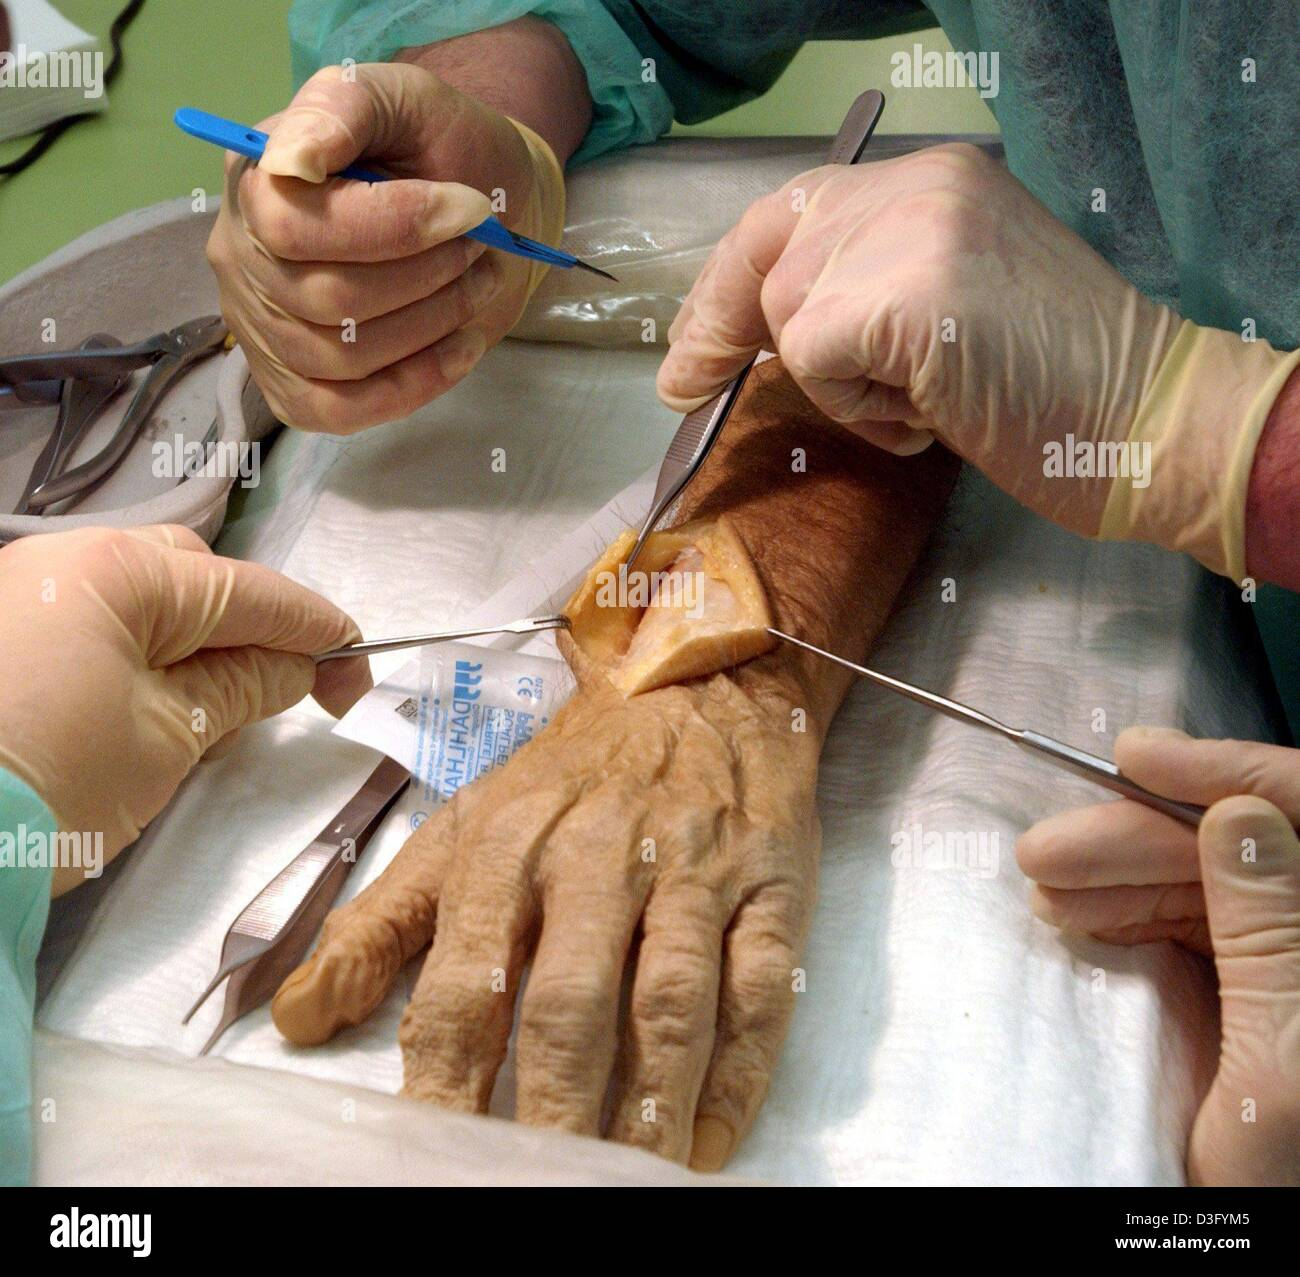 dpa) - Renowned hand surgeons practice the newest plastic surgery ...